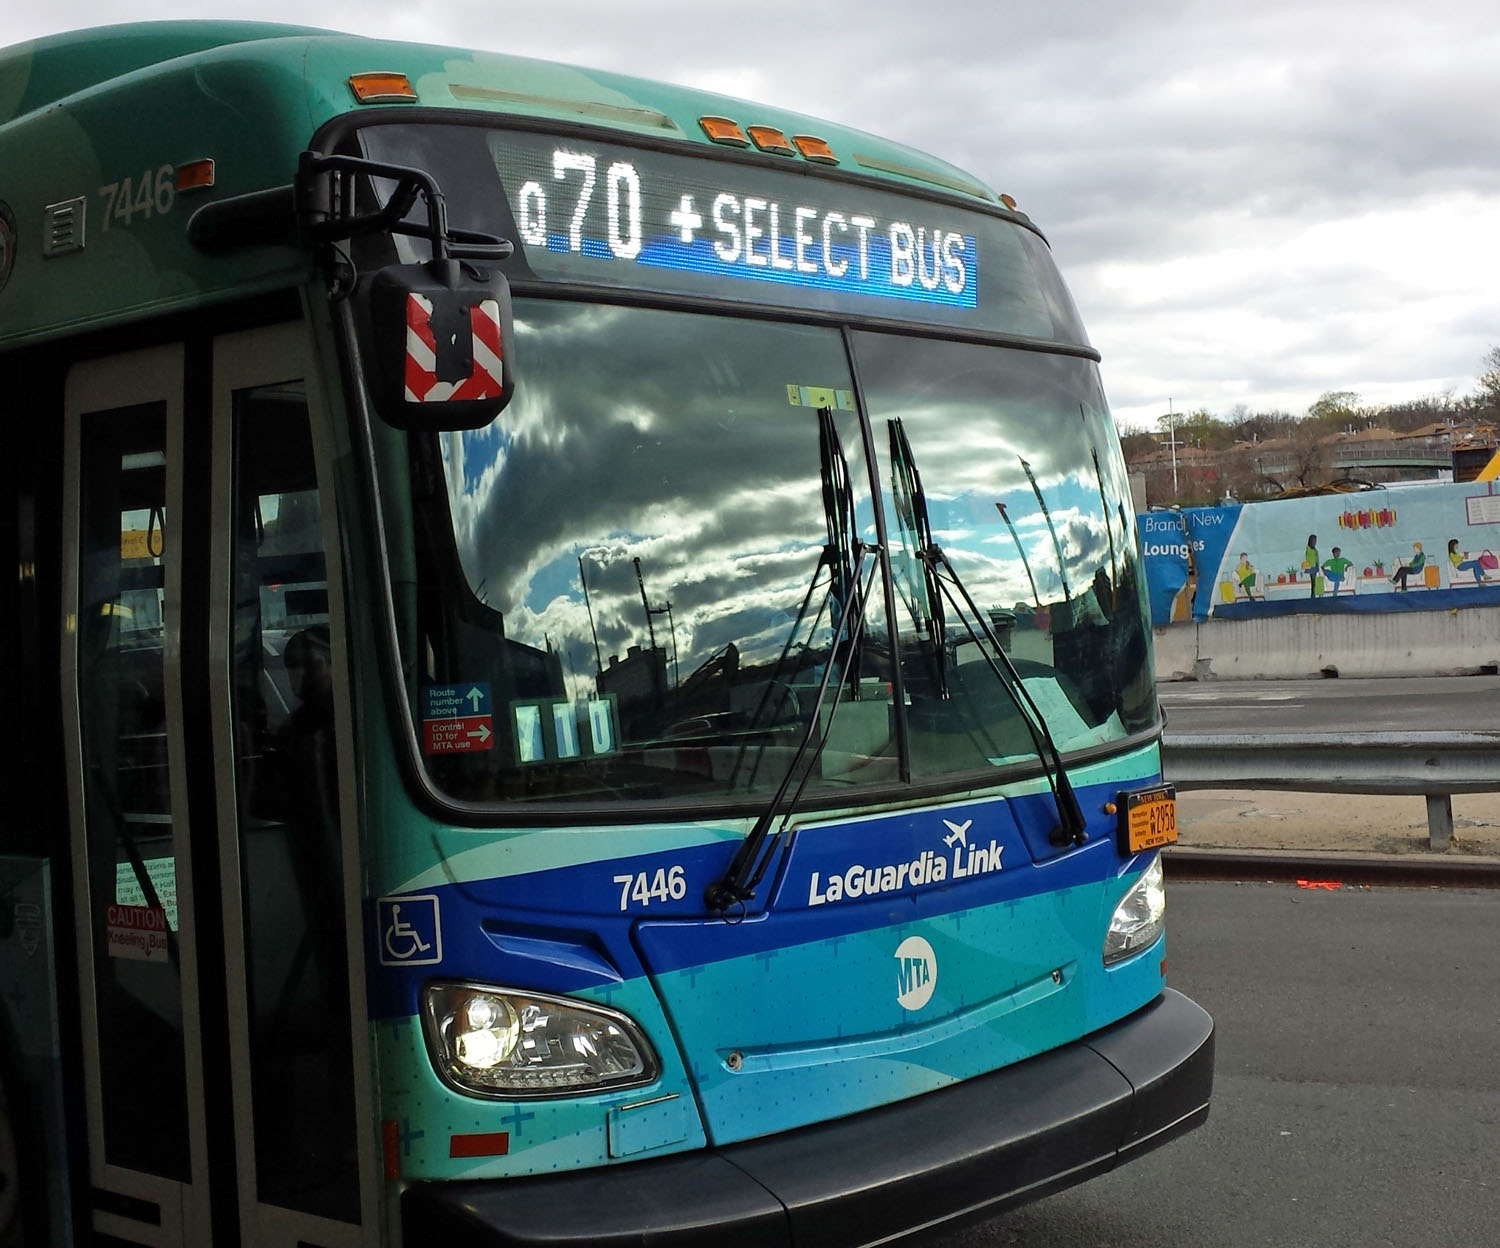 Directions: How to get here on b63 route map, north railroad map, beeline bus map, manhattan bus map, mpt bus map, q12 bus map, long beach bus map, r train map, q10 bus map, s53 bus map, b82 bus map, q64 bus map, brooklyn bus map, q44 bus map, q35 bus map, bronx bus map, queens bus map, mta.info map, nycta bus map, q17 bus map,